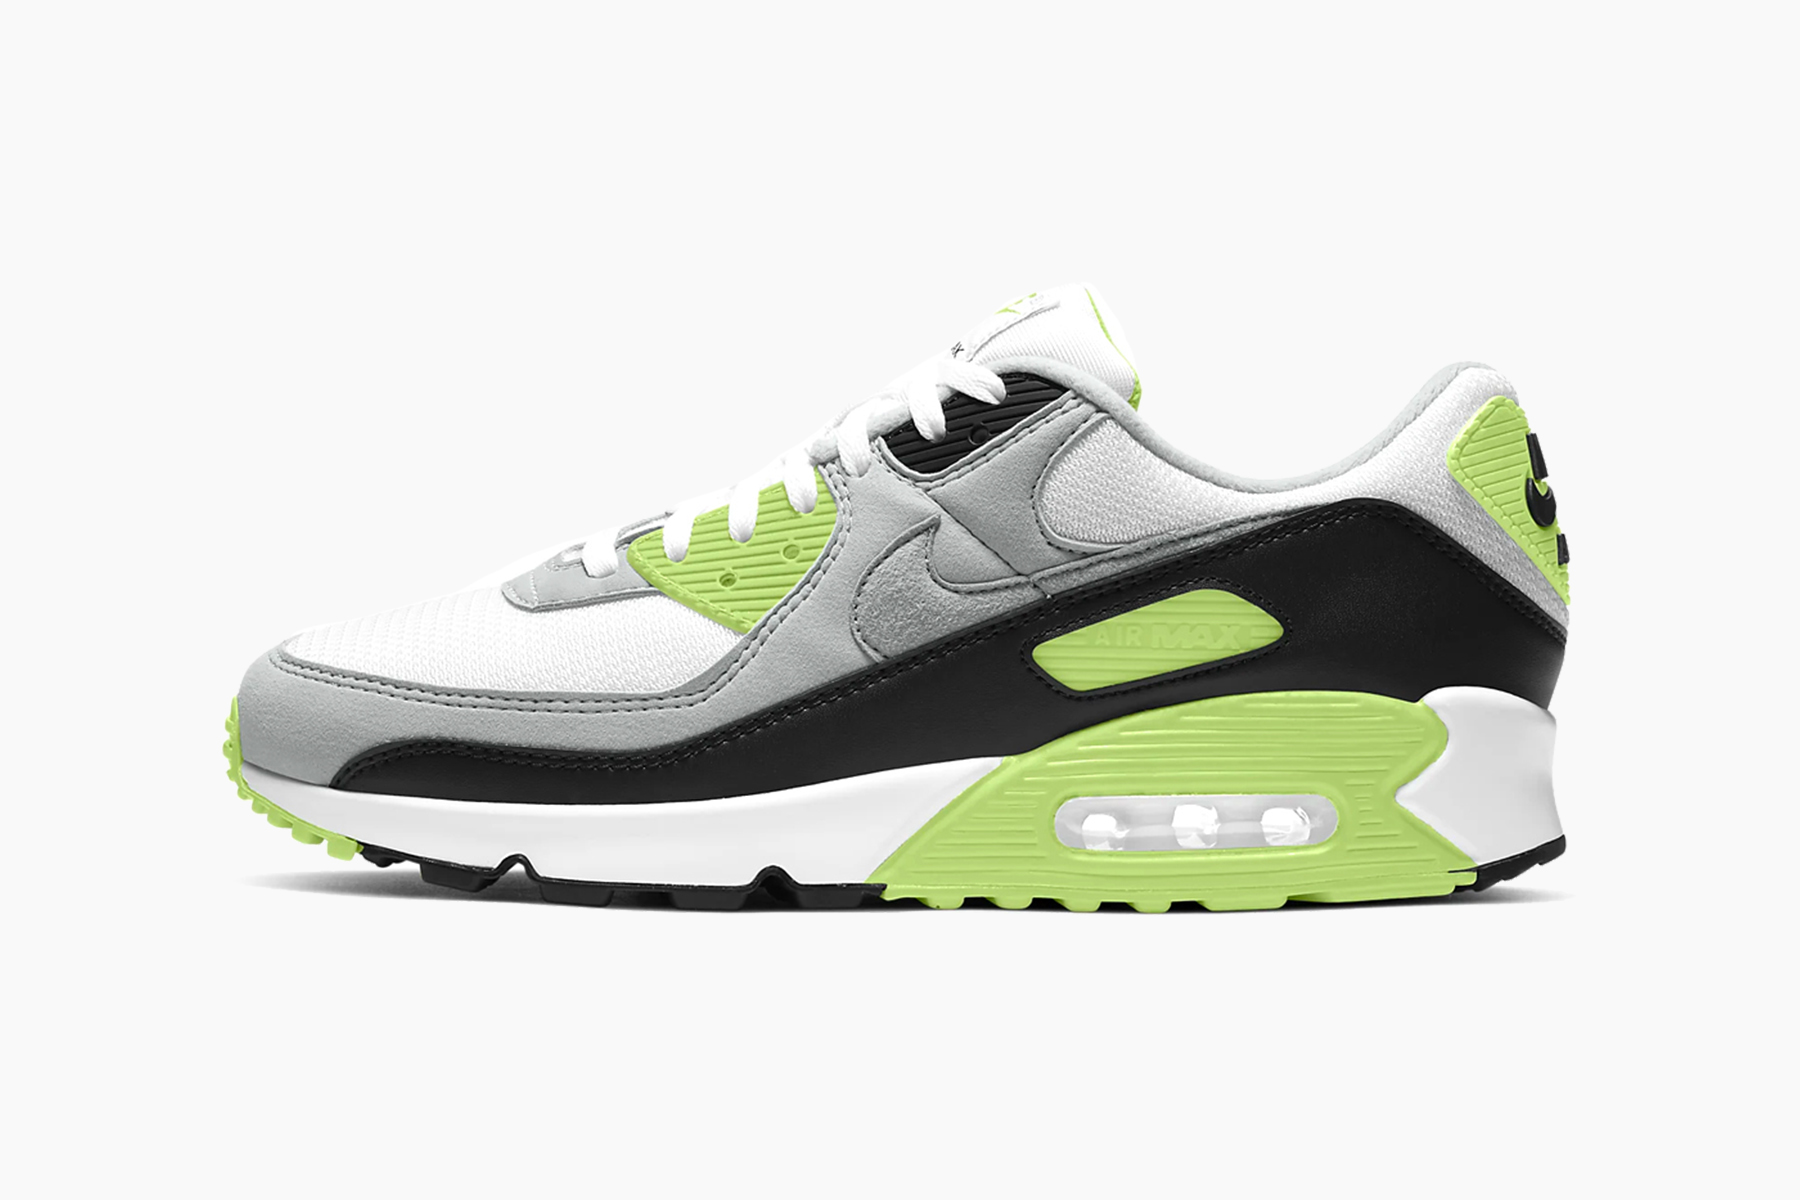 air max 90 grige nere